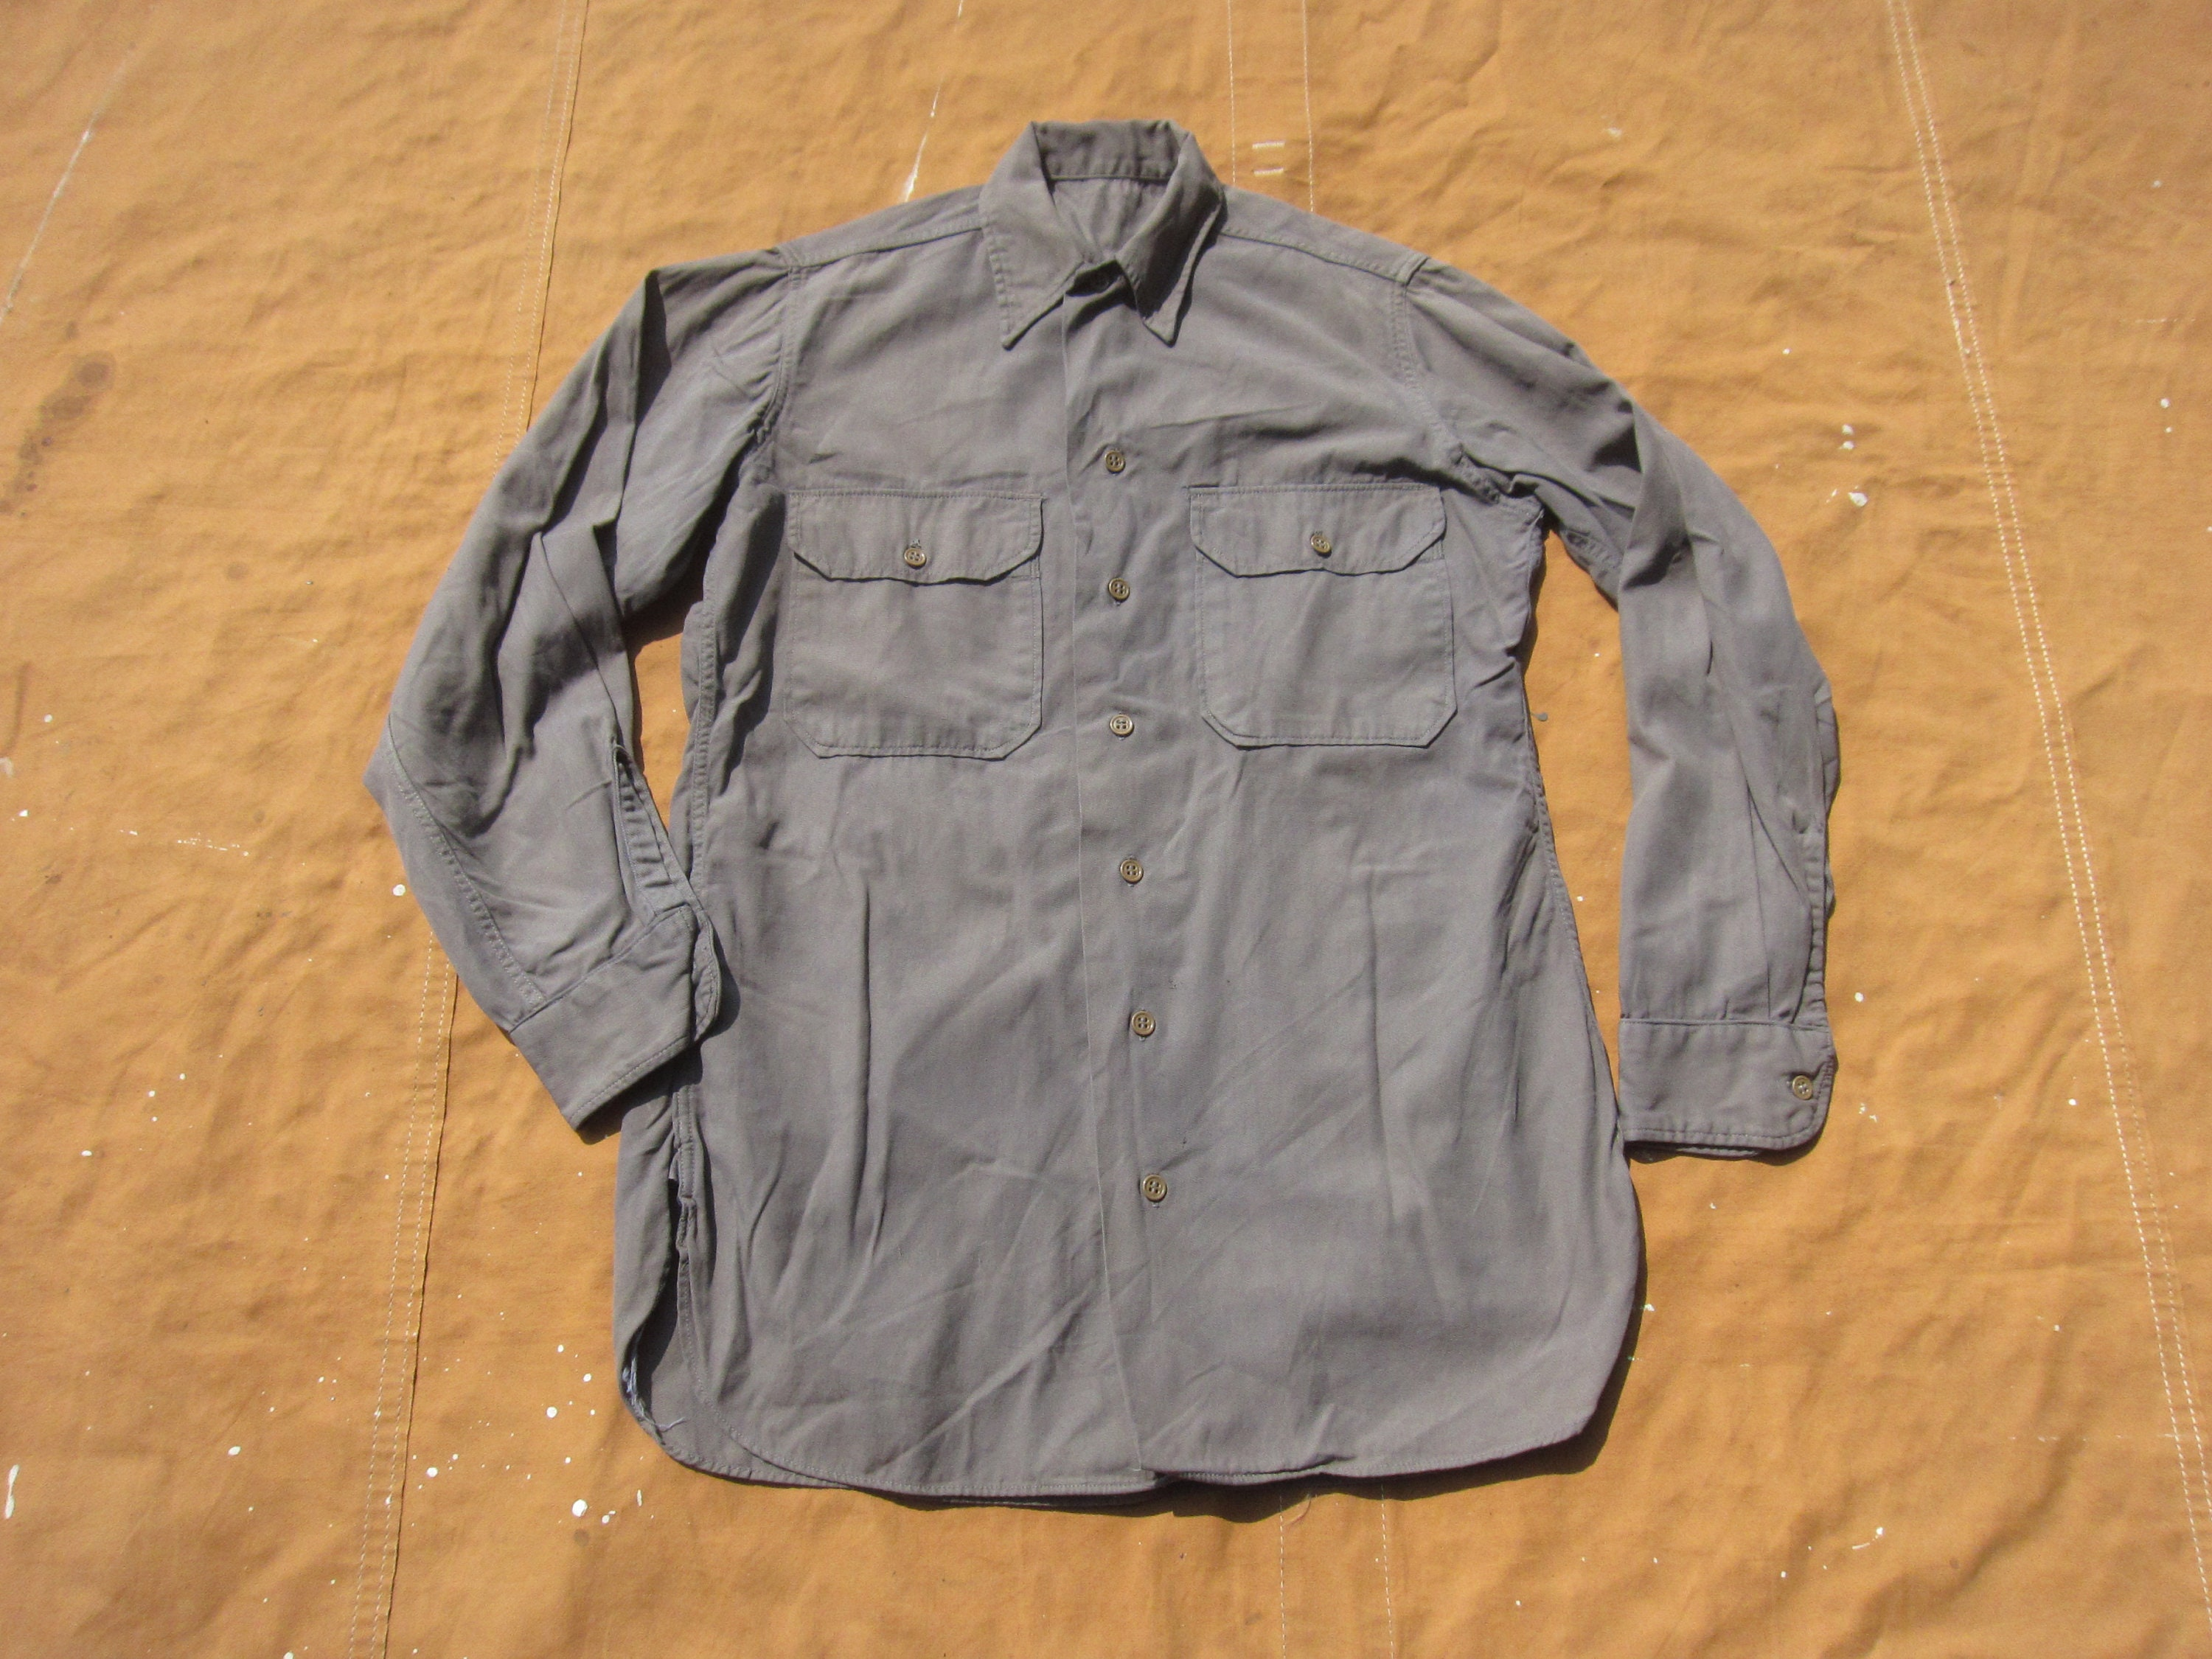 1940s Men's Shirts, Sweaters, Vests Small 50S Us Army Overdyed Button Down ShirtGrey Gray Dyed, Unique Custom, Work Shirt, 100 Cotton, 1940S 40S 1950S $0.00 AT vintagedancer.com